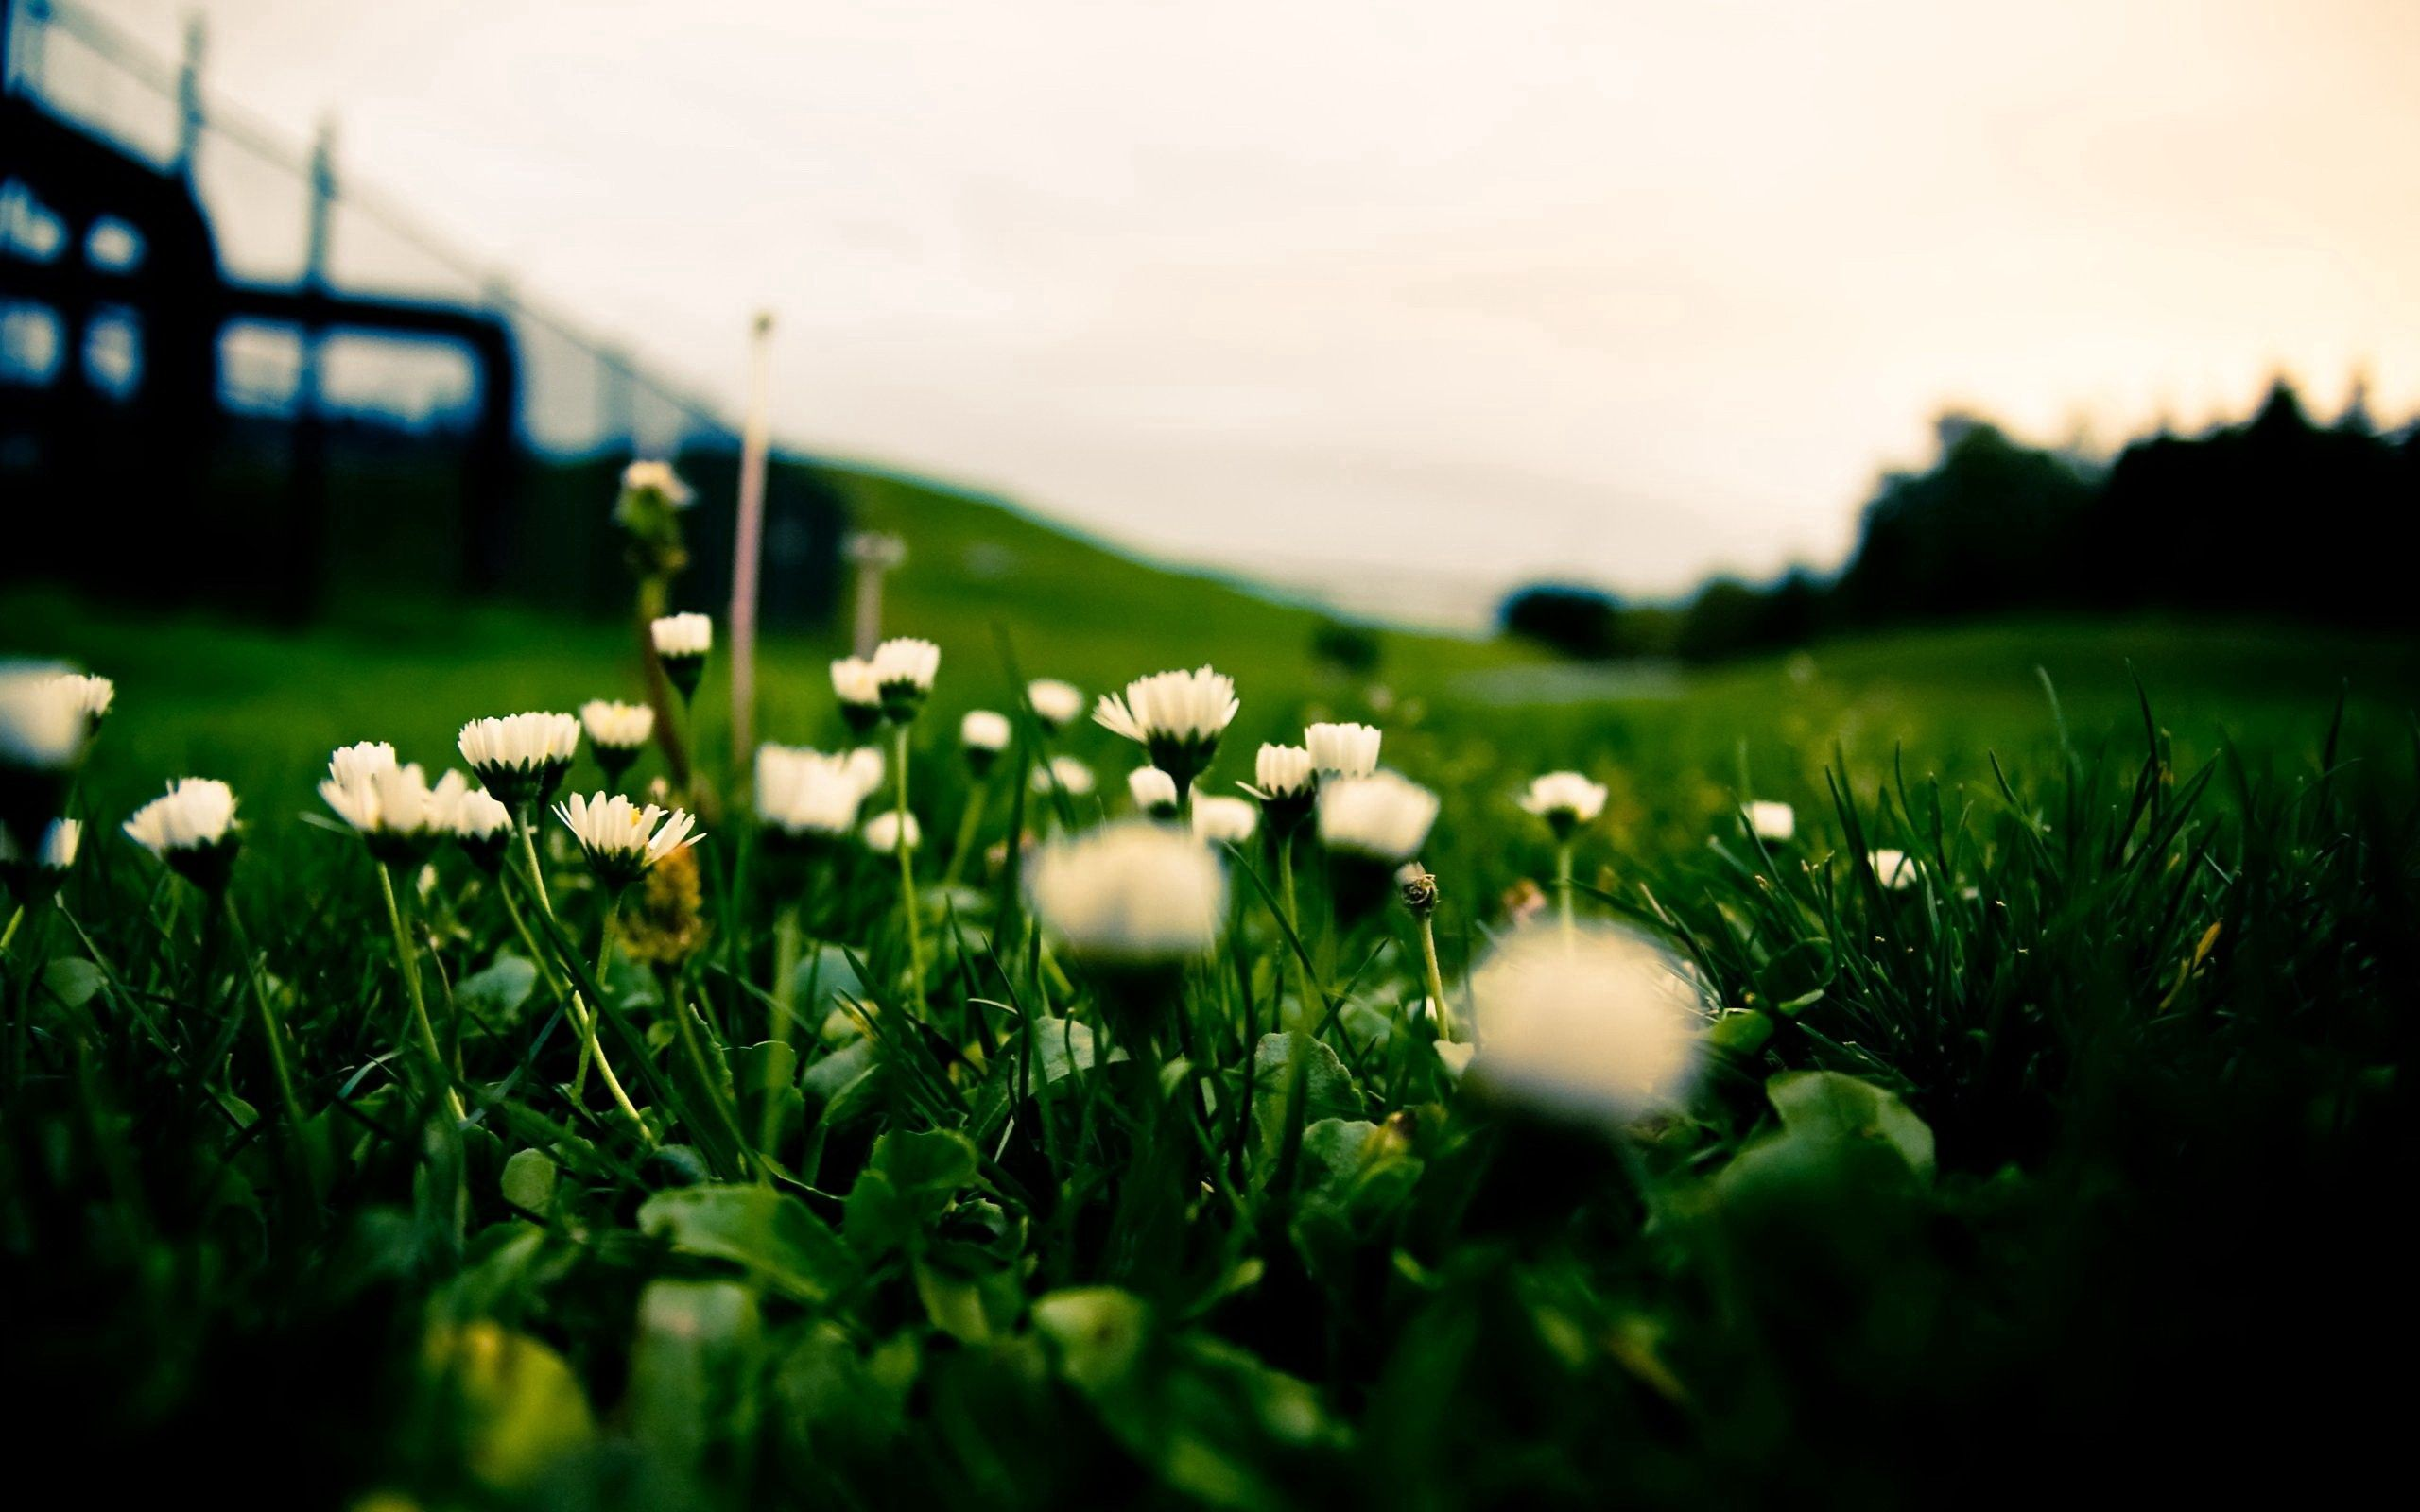 152327 download wallpaper Macro, Grass, Field, Blur, Smooth, Background, Macro Photography, Flowers screensavers and pictures for free